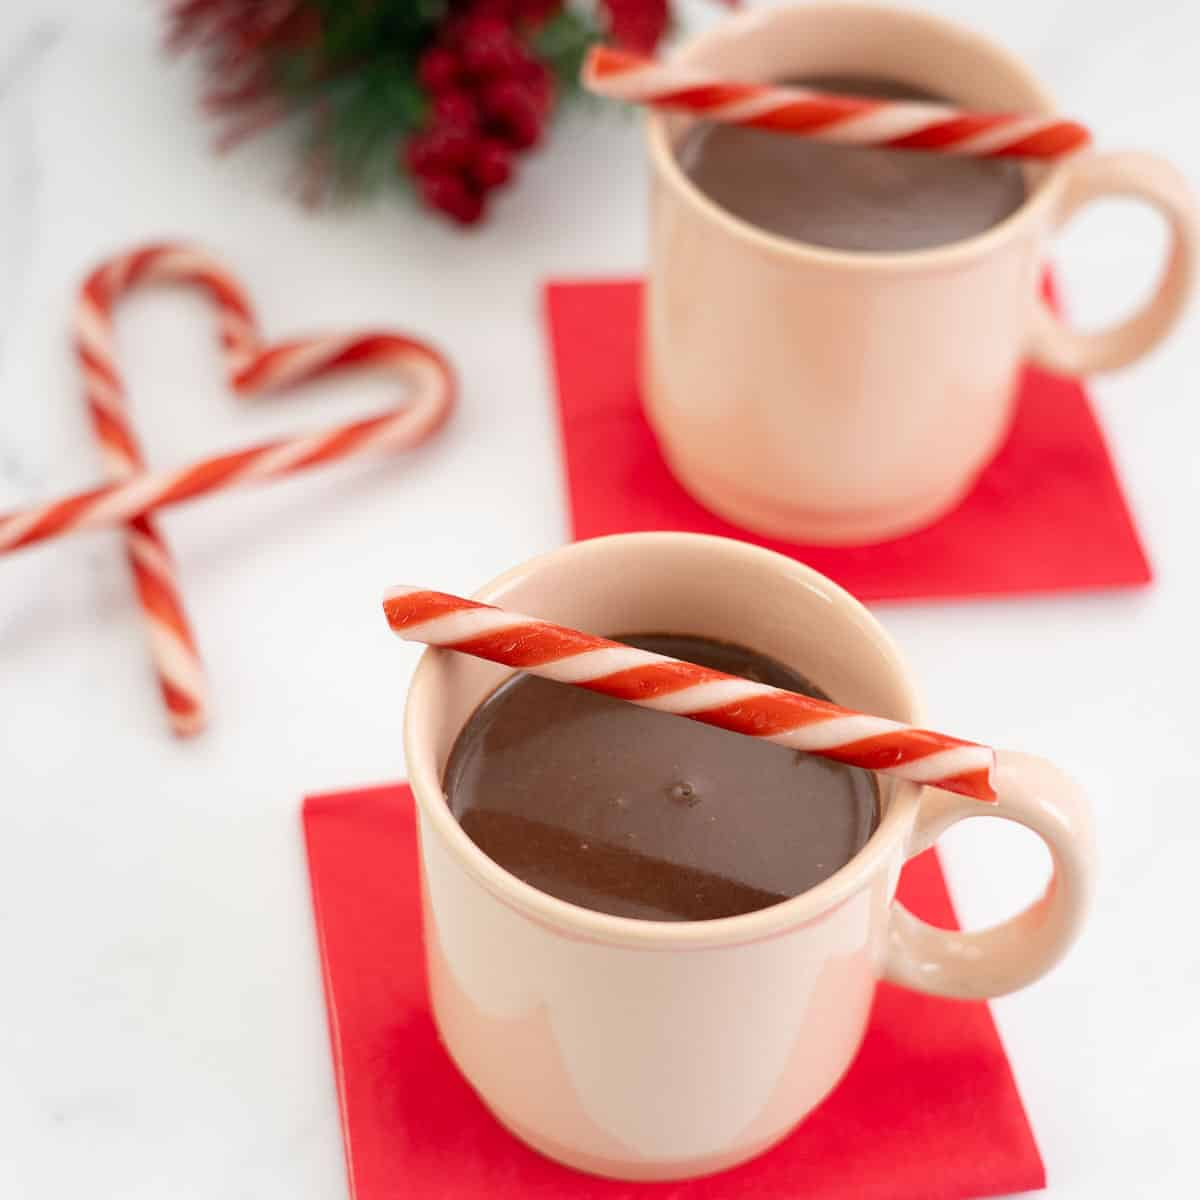 Two peppermint hot chocolates in pale pink mugs decorated with red and white candy canes